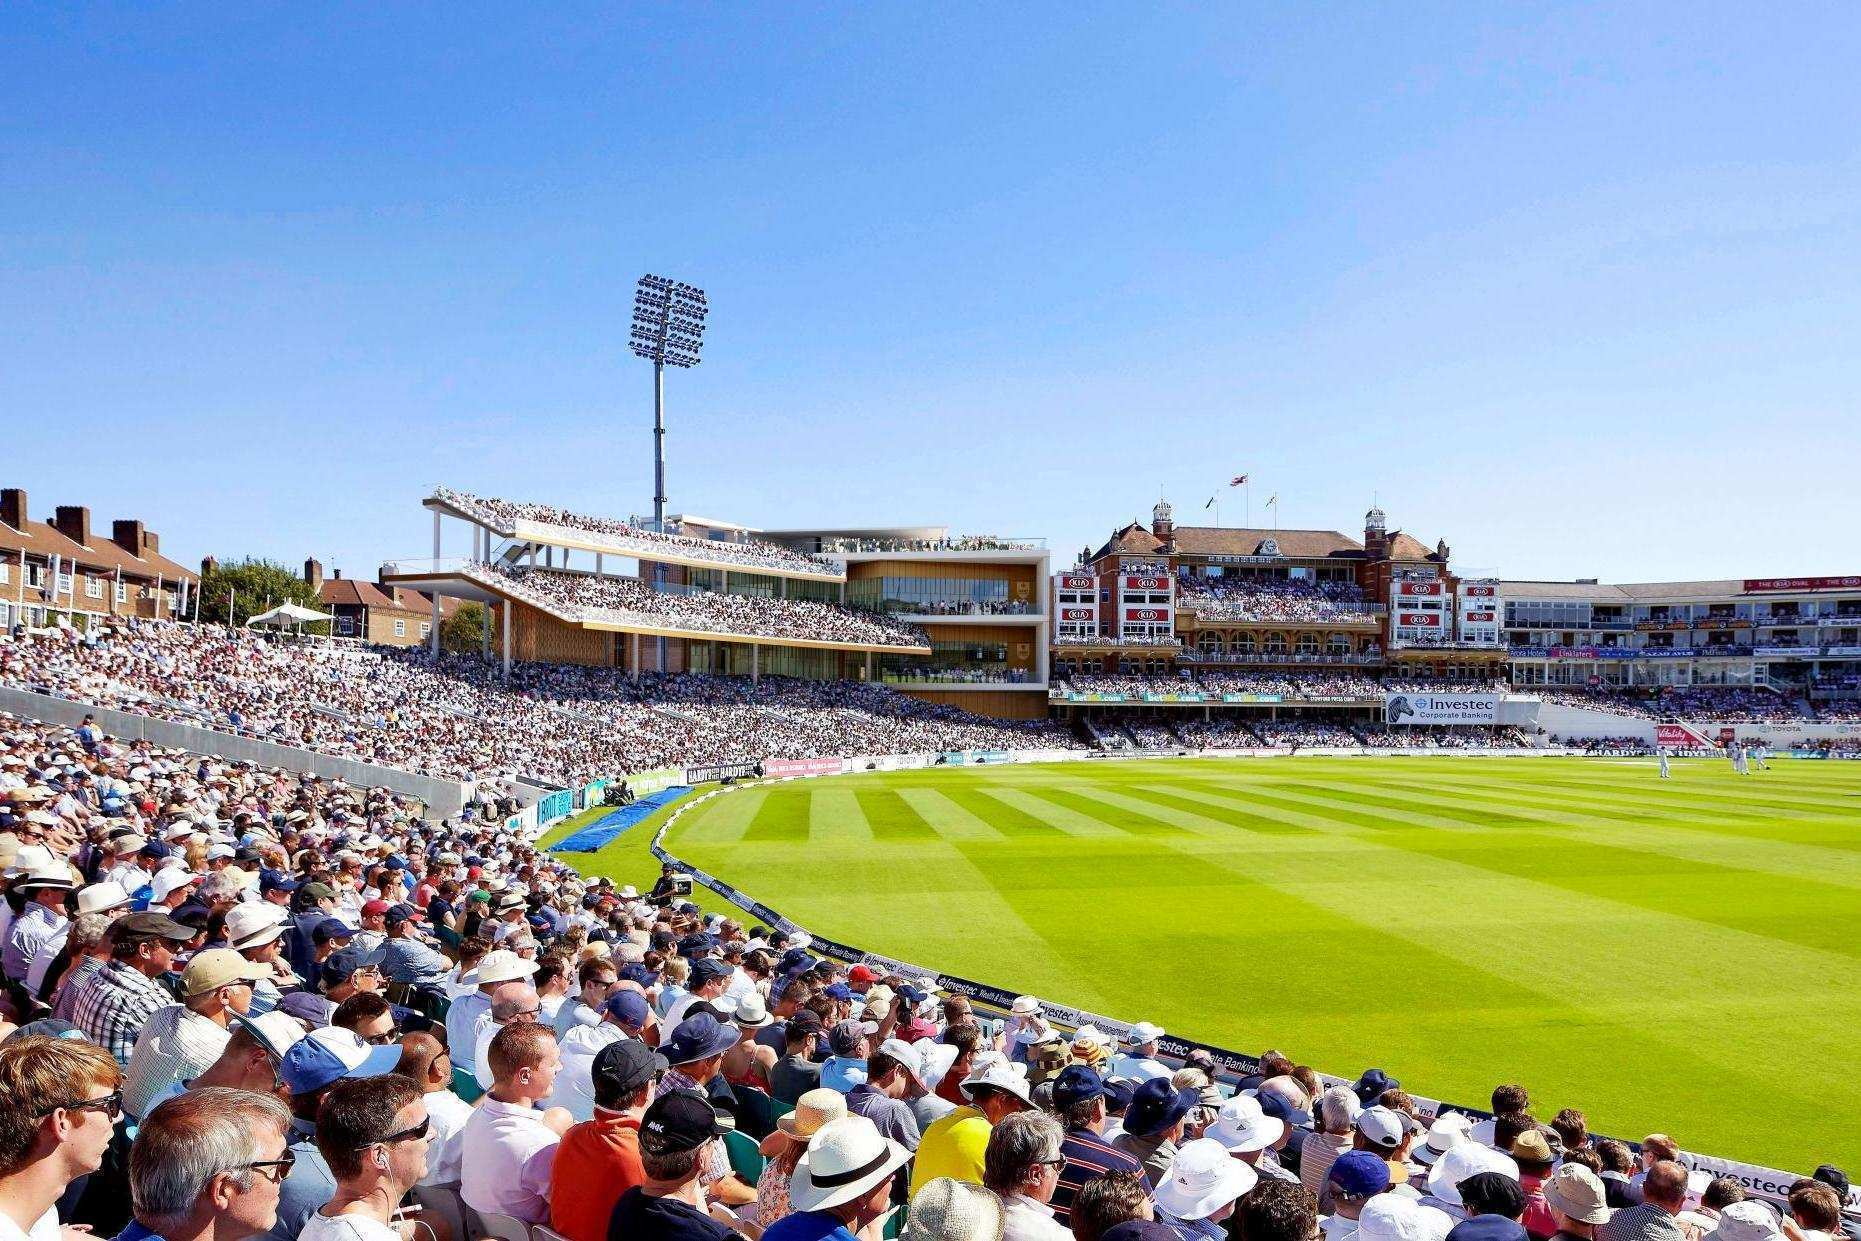 26 All New Kia Oval 2020 Tickets Images for Kia Oval 2020 Tickets